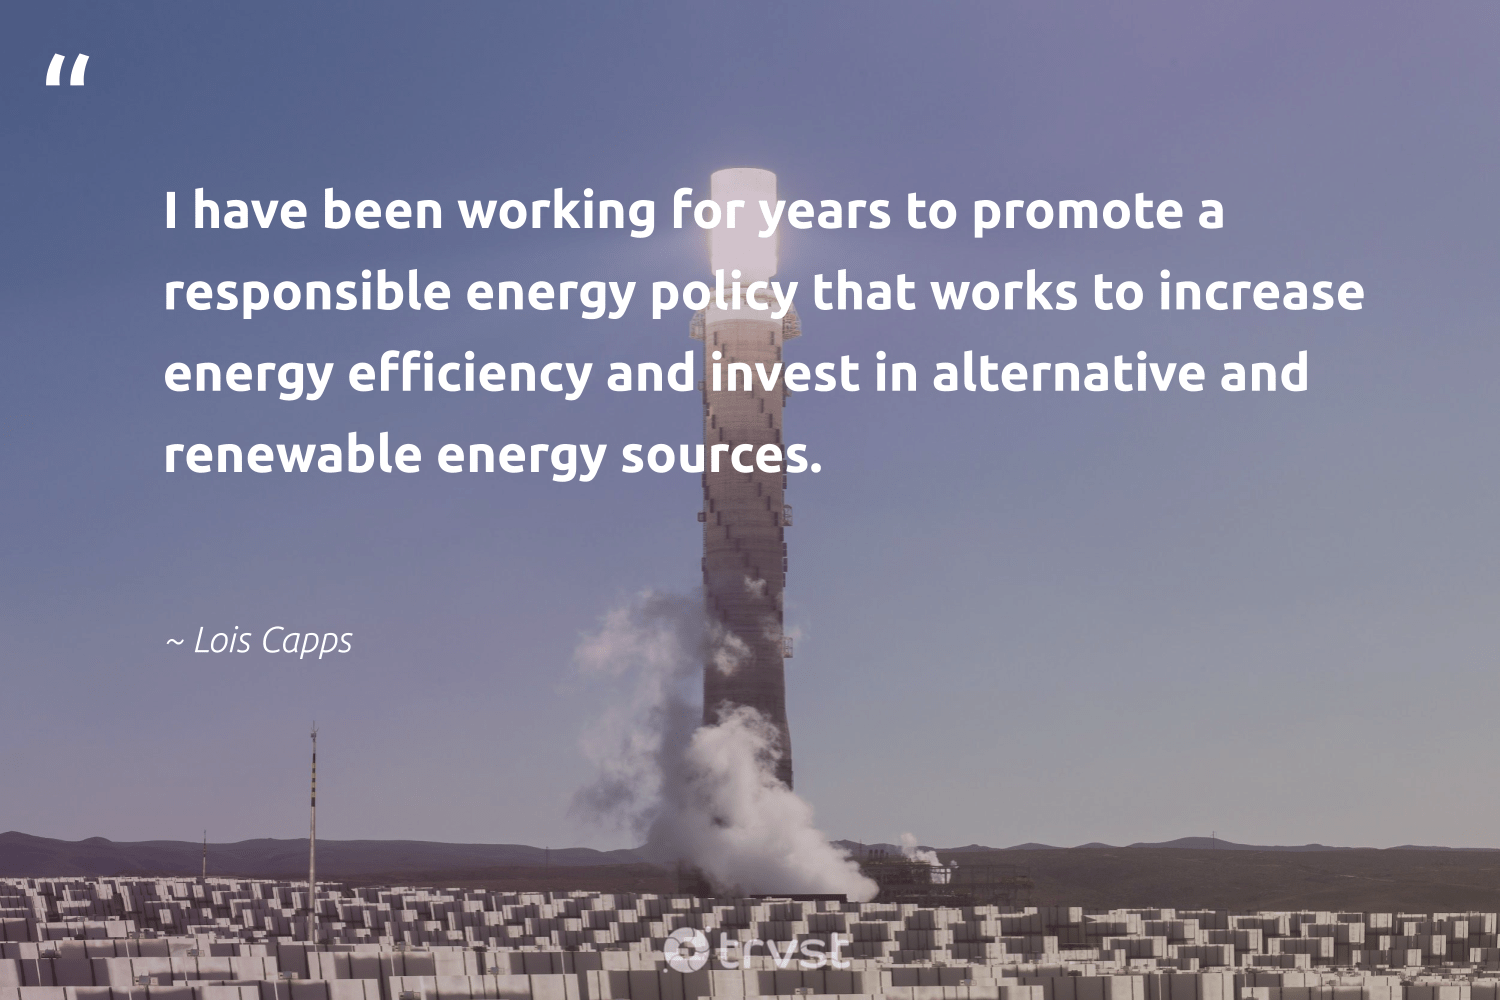 """""""I have been working for years to promote a responsible energy policy that works to increase energy efficiency and invest in alternative and renewable energy sources.""""  - Lois Capps #trvst #quotes #renewableenergy #energy #renewable #lowcarbon #affordable #climatechange #zerocarbon #socialchange #cleanenergy #100percentrenewable"""